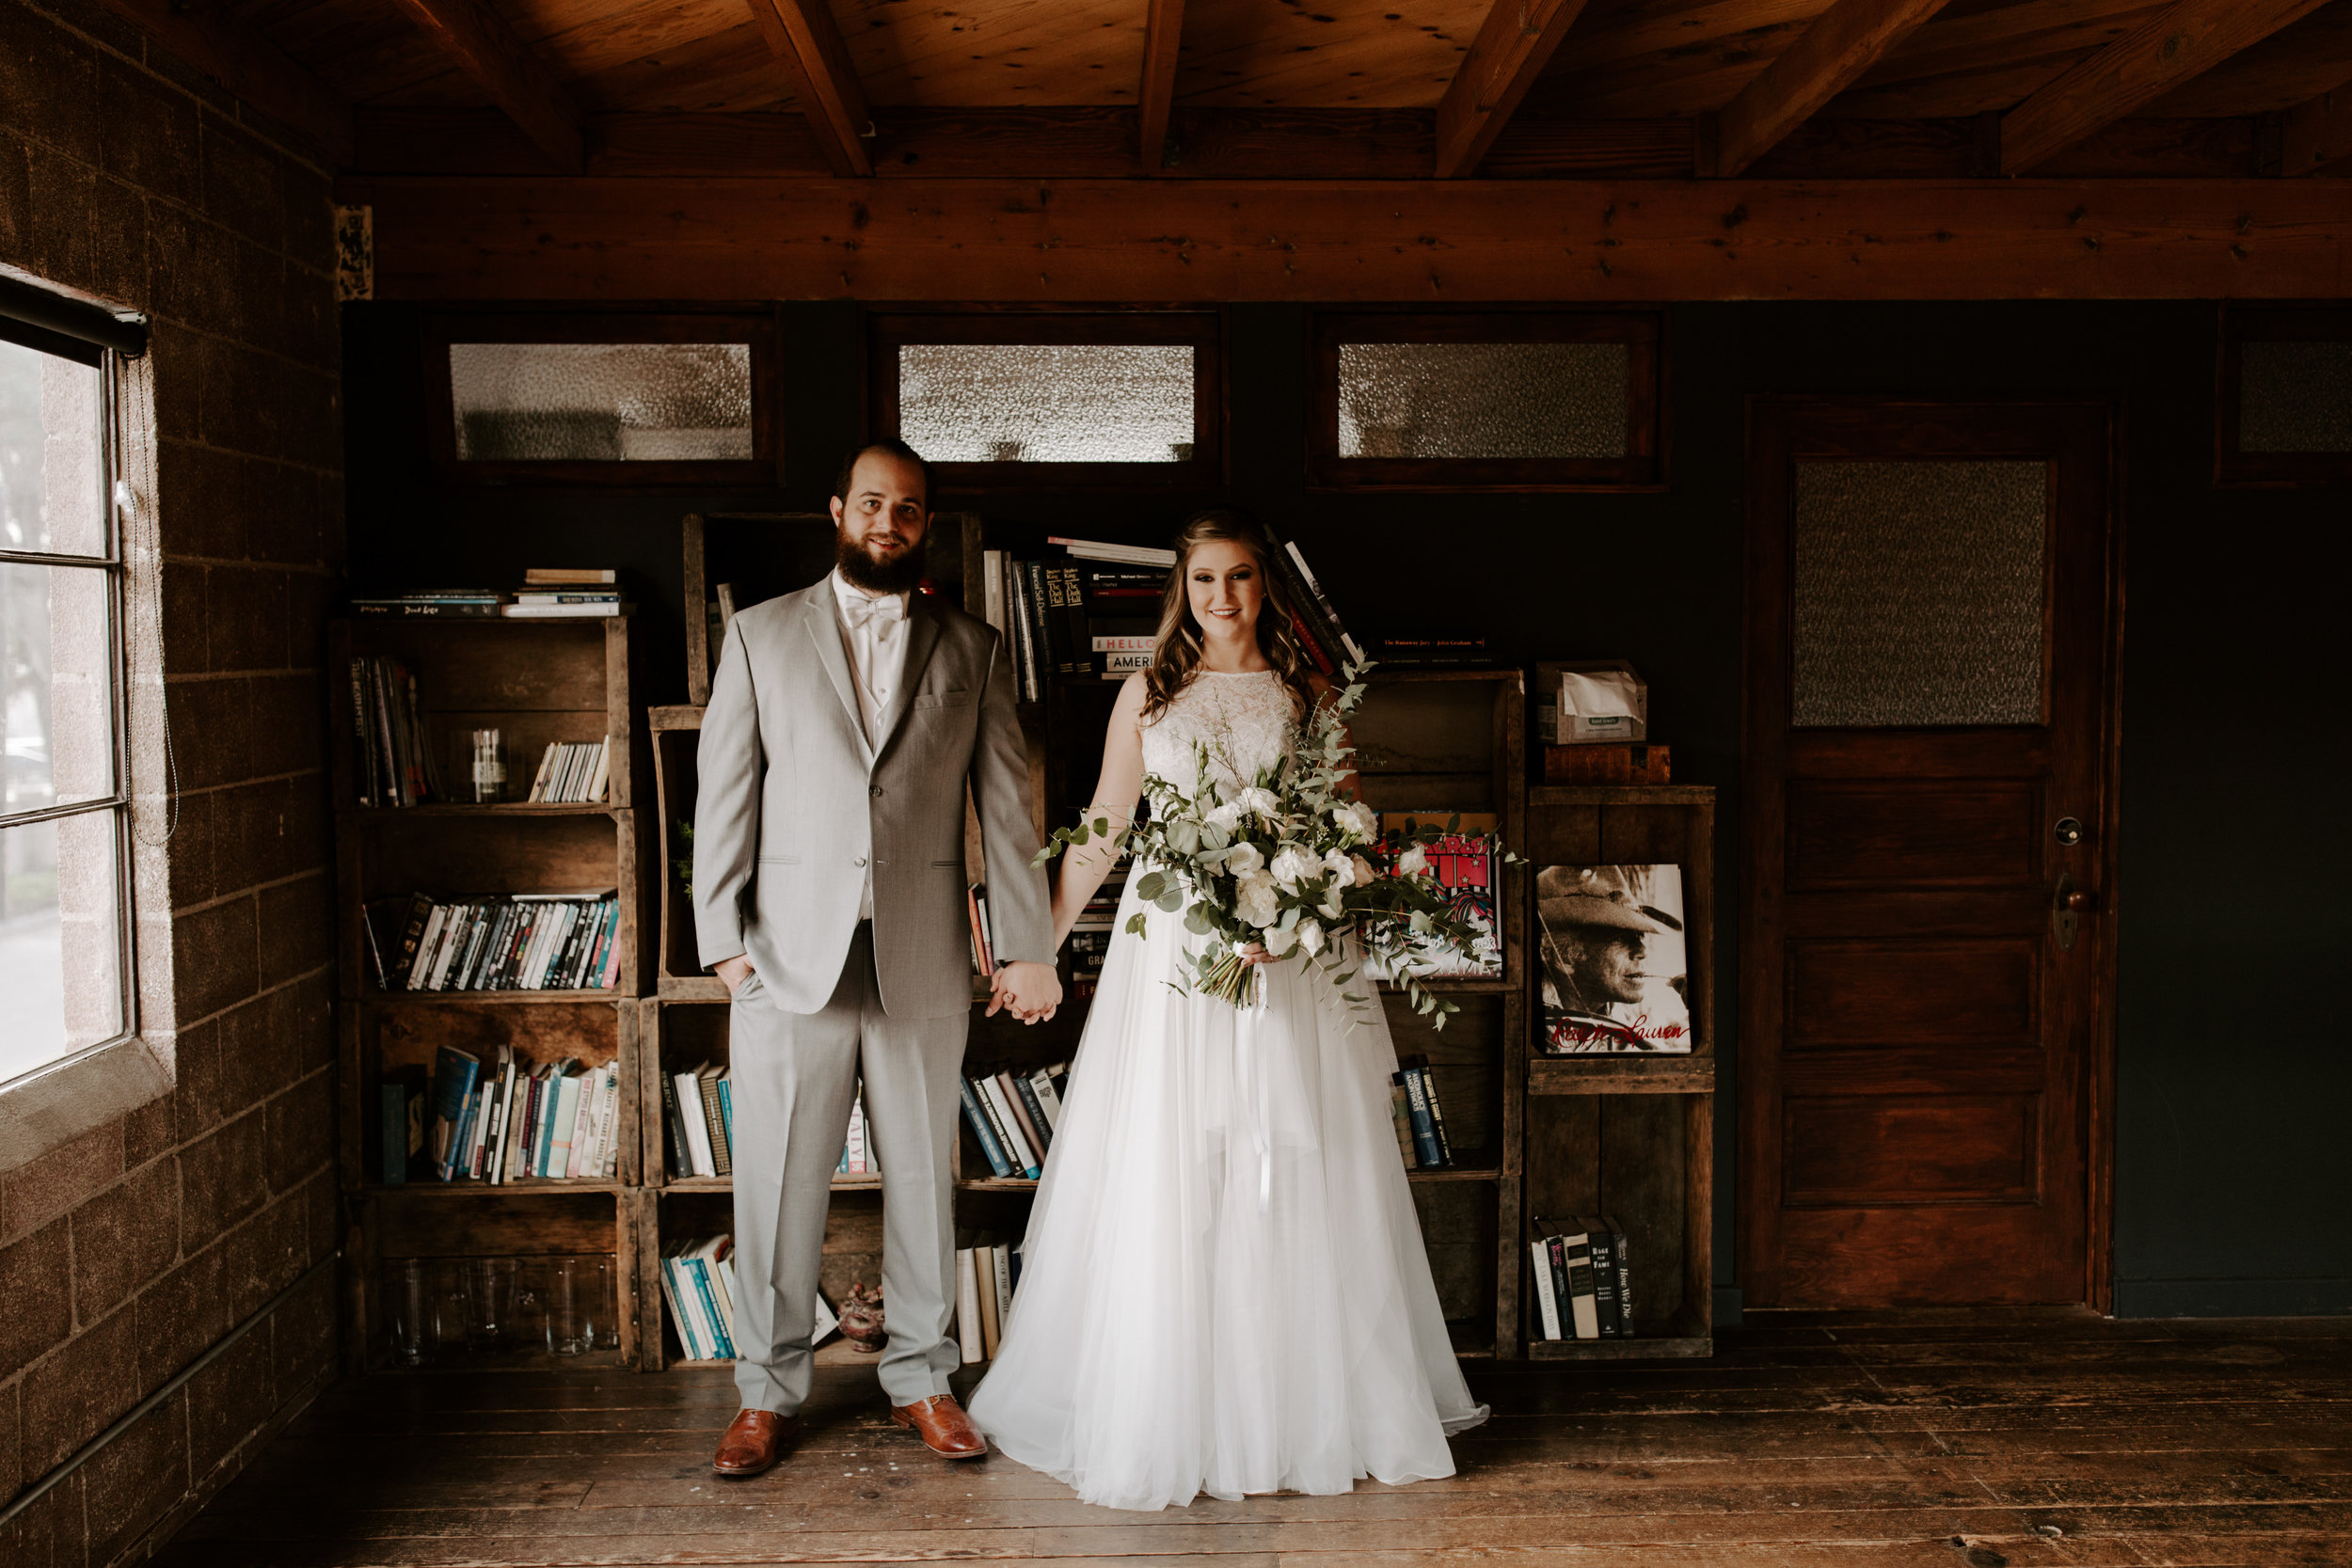 Smoky Hollow Studios Wedding Anne & Lewis Emily Magers Photography-400.jpg